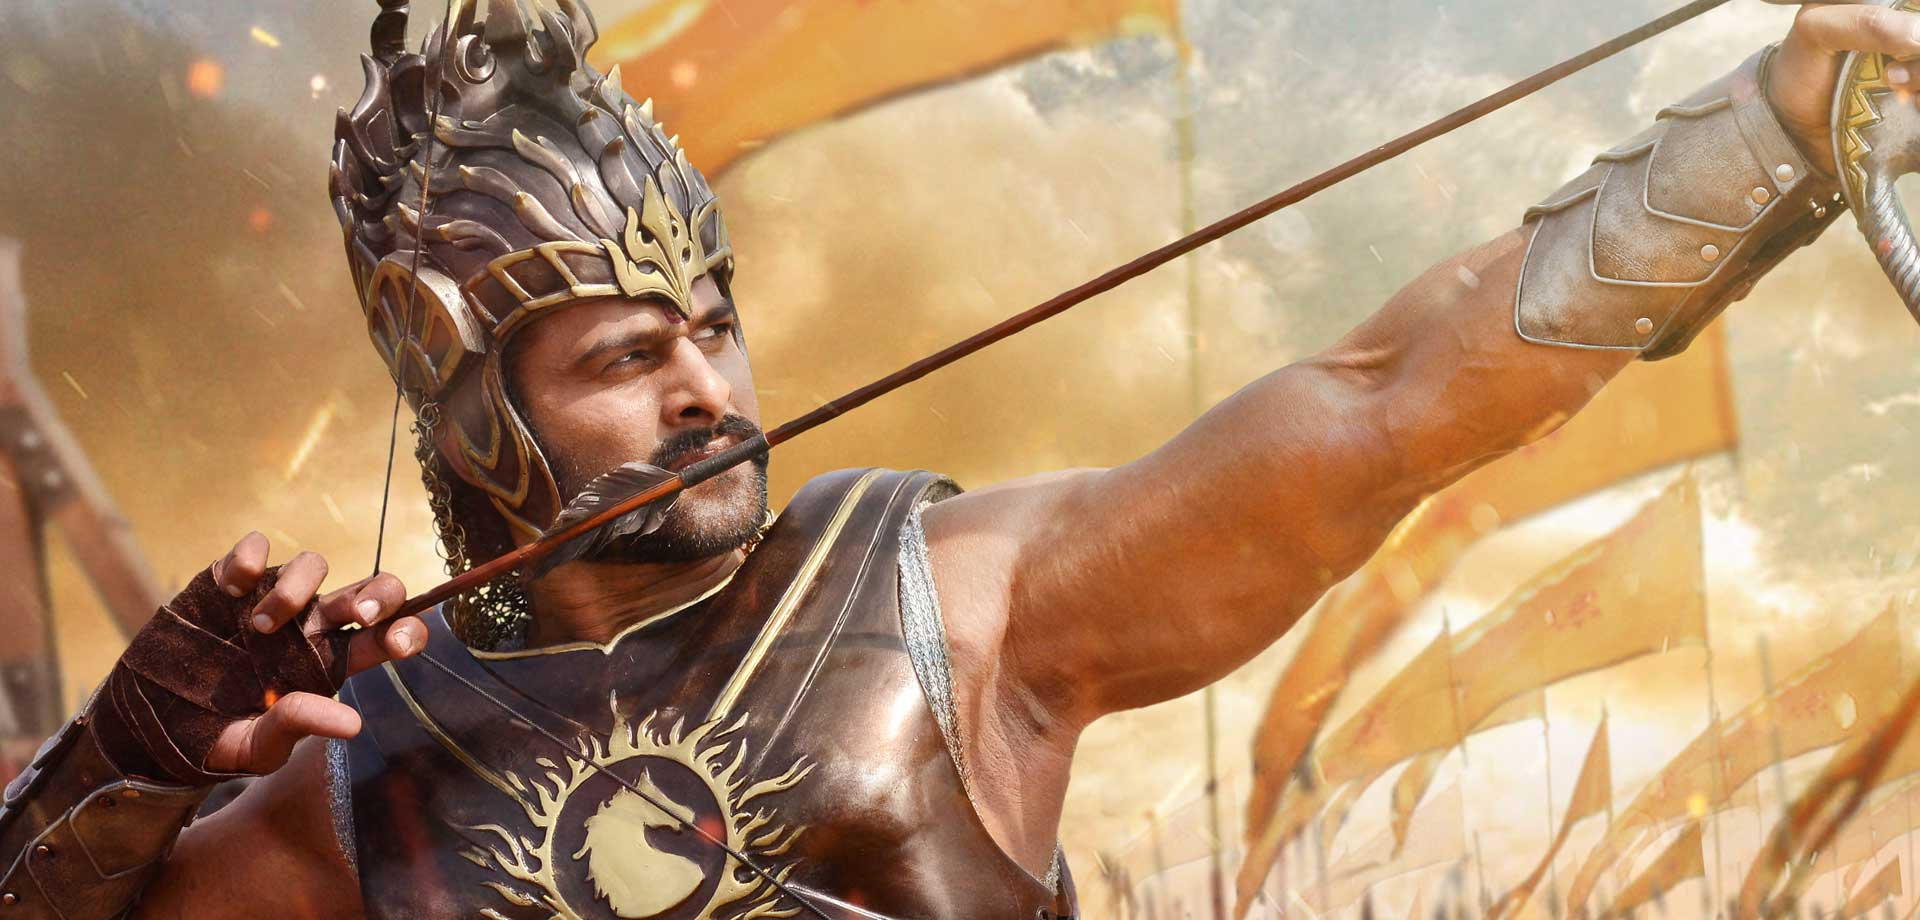 Baahubali Official Trailer | Ft. Prabhas, Rana Daggubati & Anushka Shetty | Live The Epic